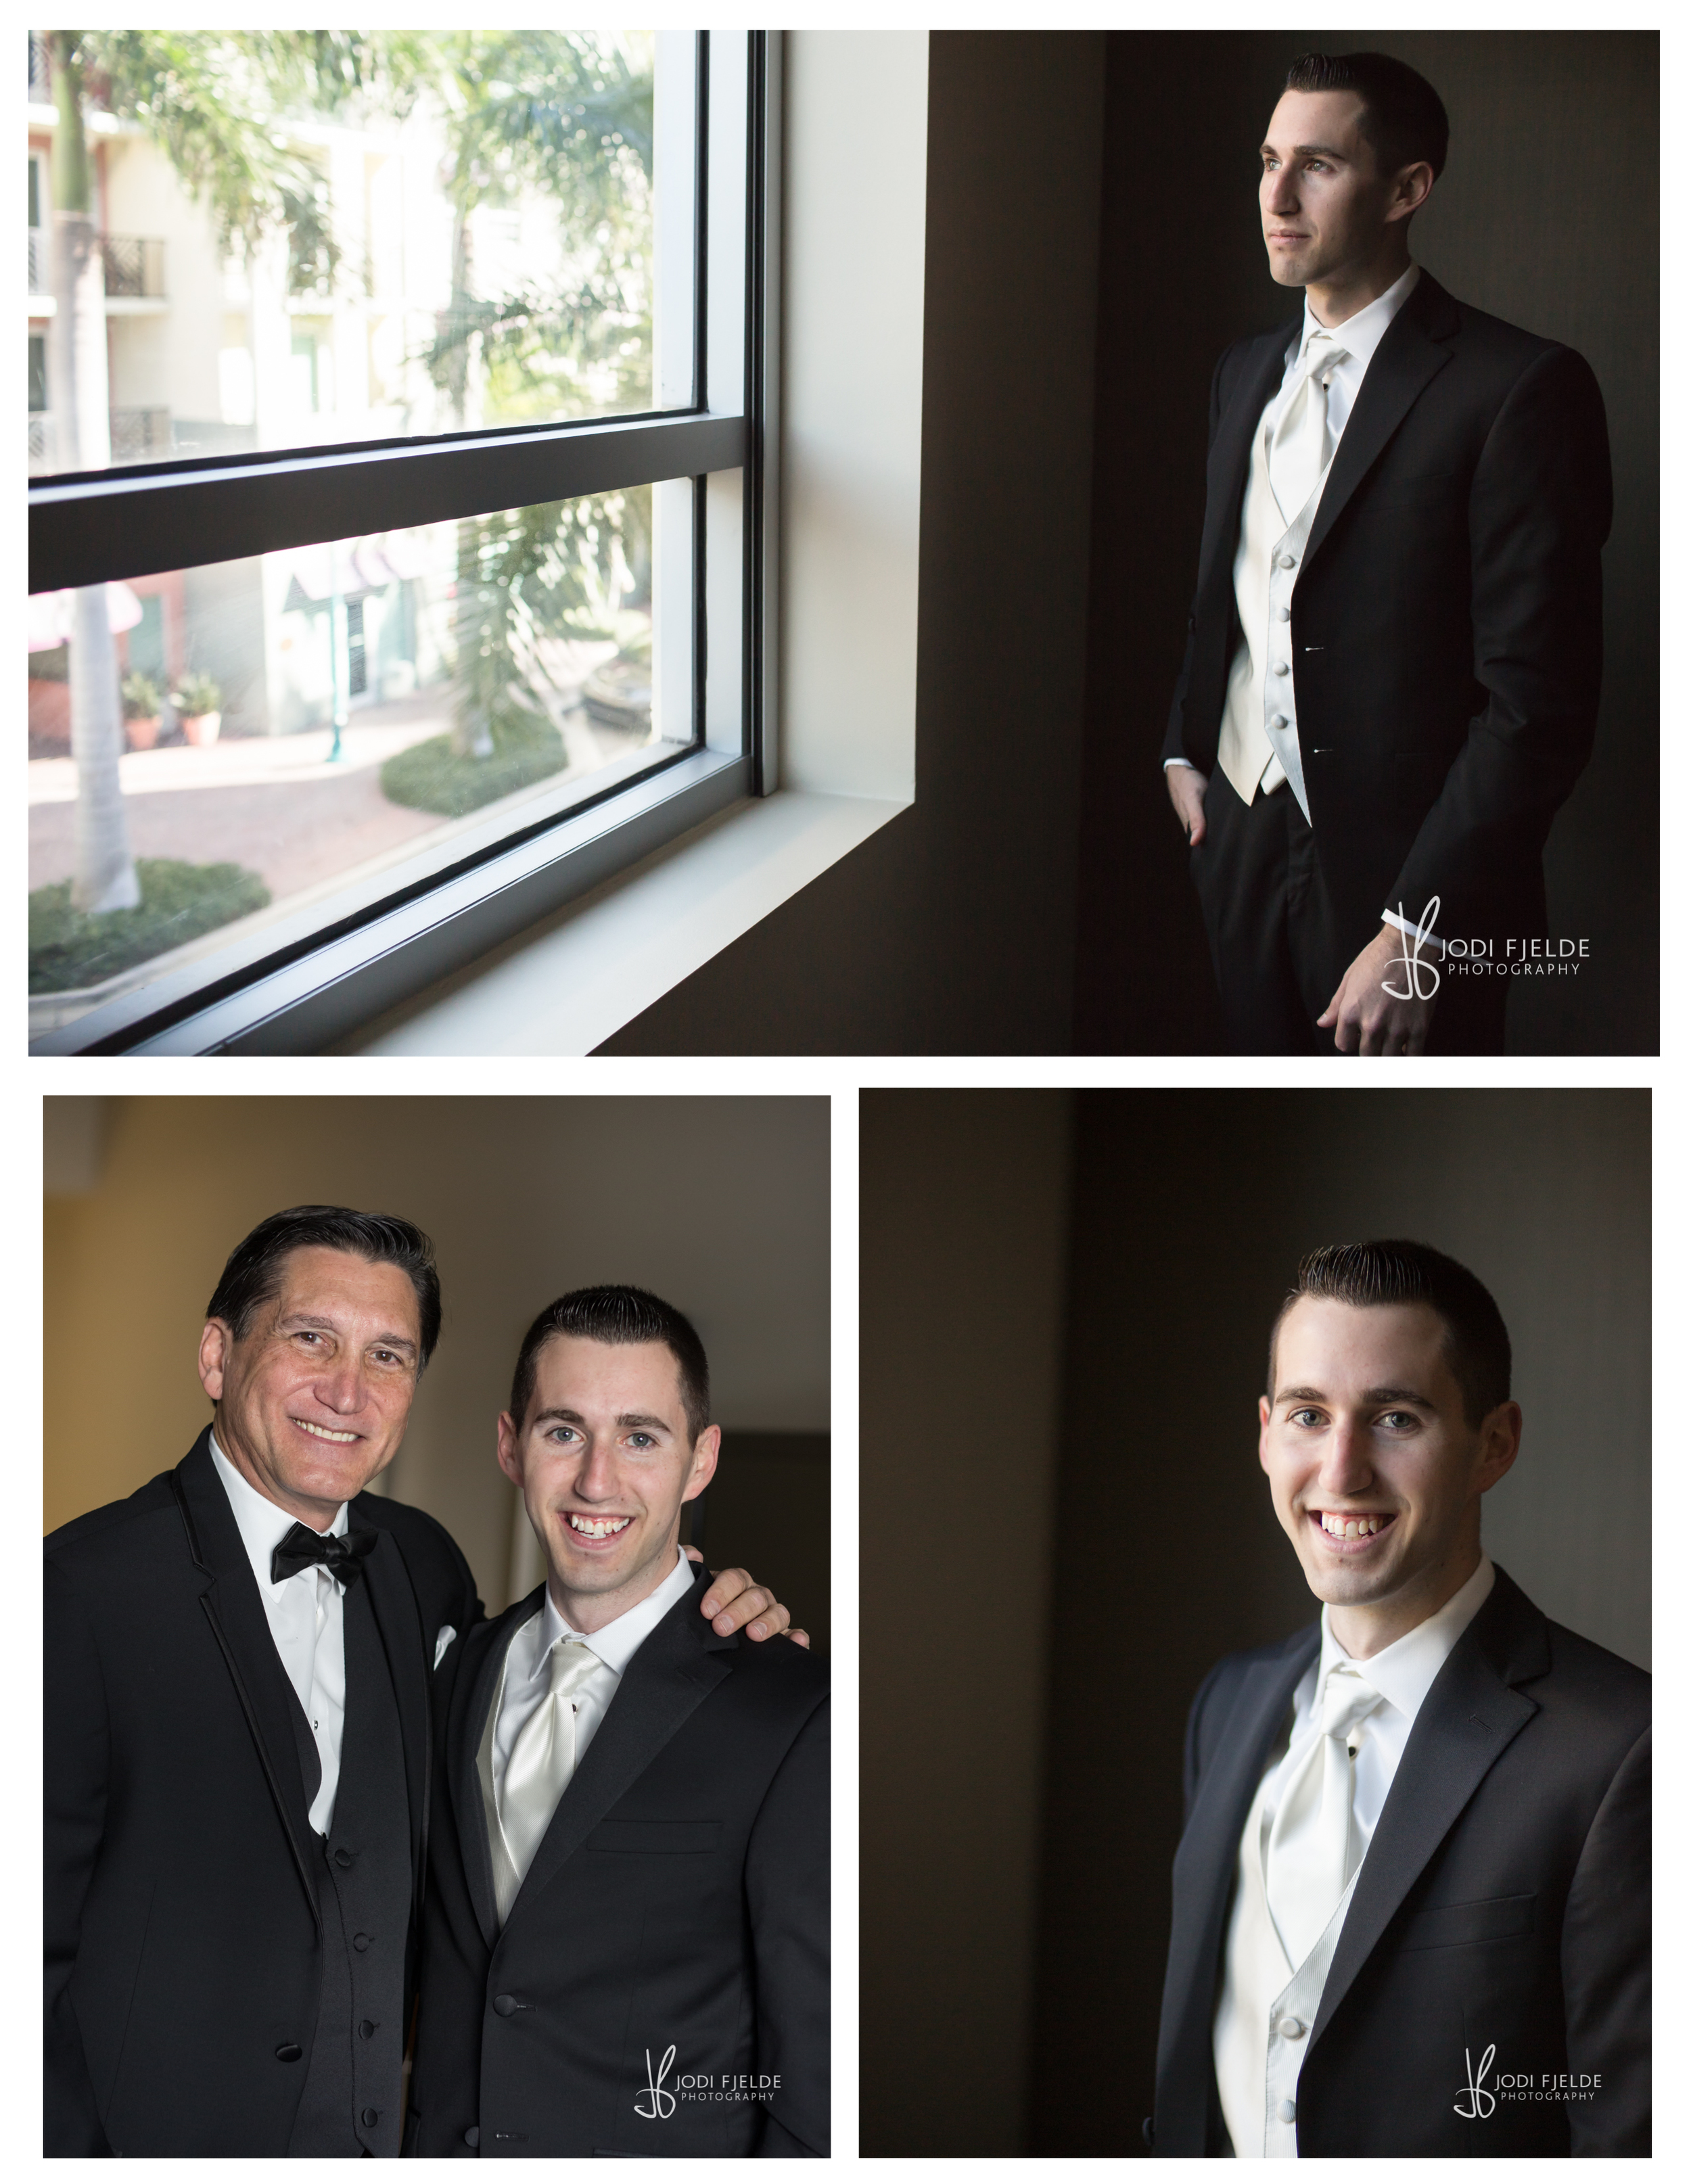 Benvenuto_Palm_Beach_Wedding_Jewish_Michelle & Jason_Jodi_Fjedle_Photography 12.jpg